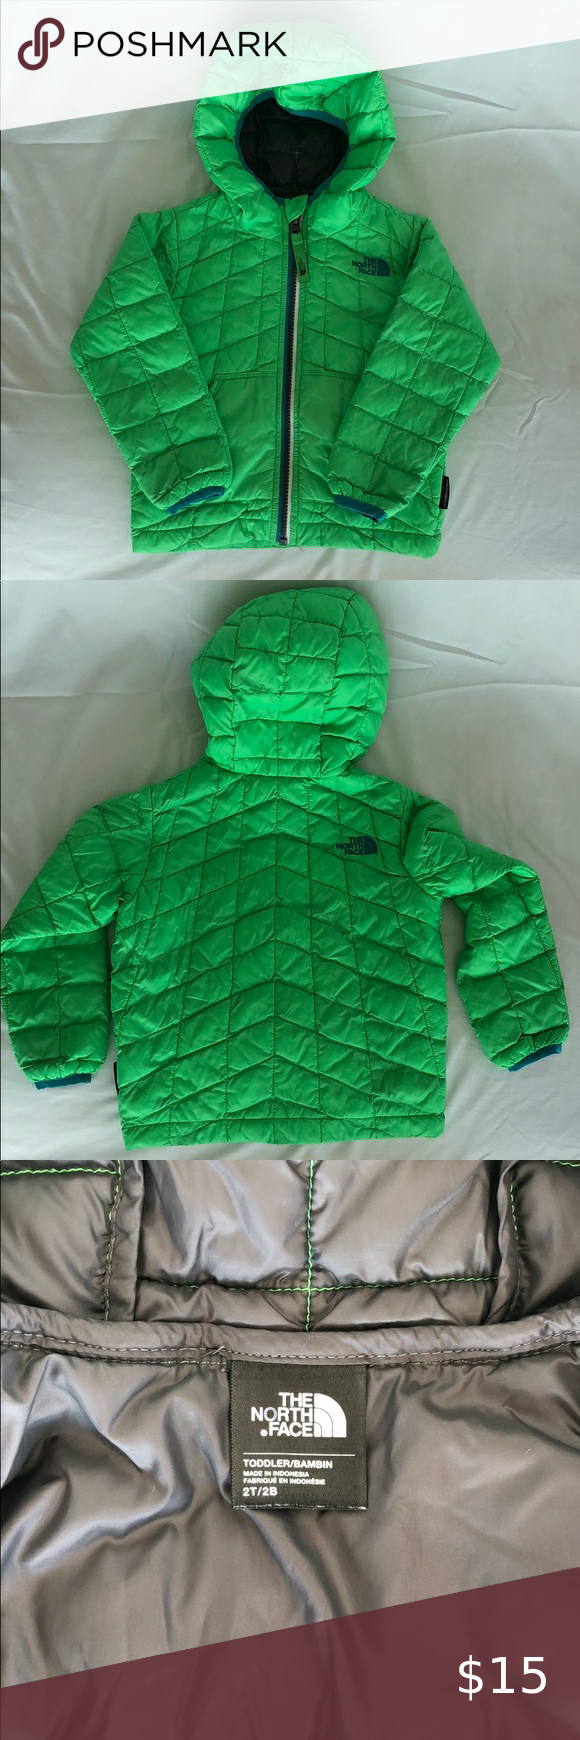 The North Face Puffer Jacket Toddler 2t North Face Puffer Jacket The North Face Puffer Jacket North Face Puffer [ 1740 x 580 Pixel ]